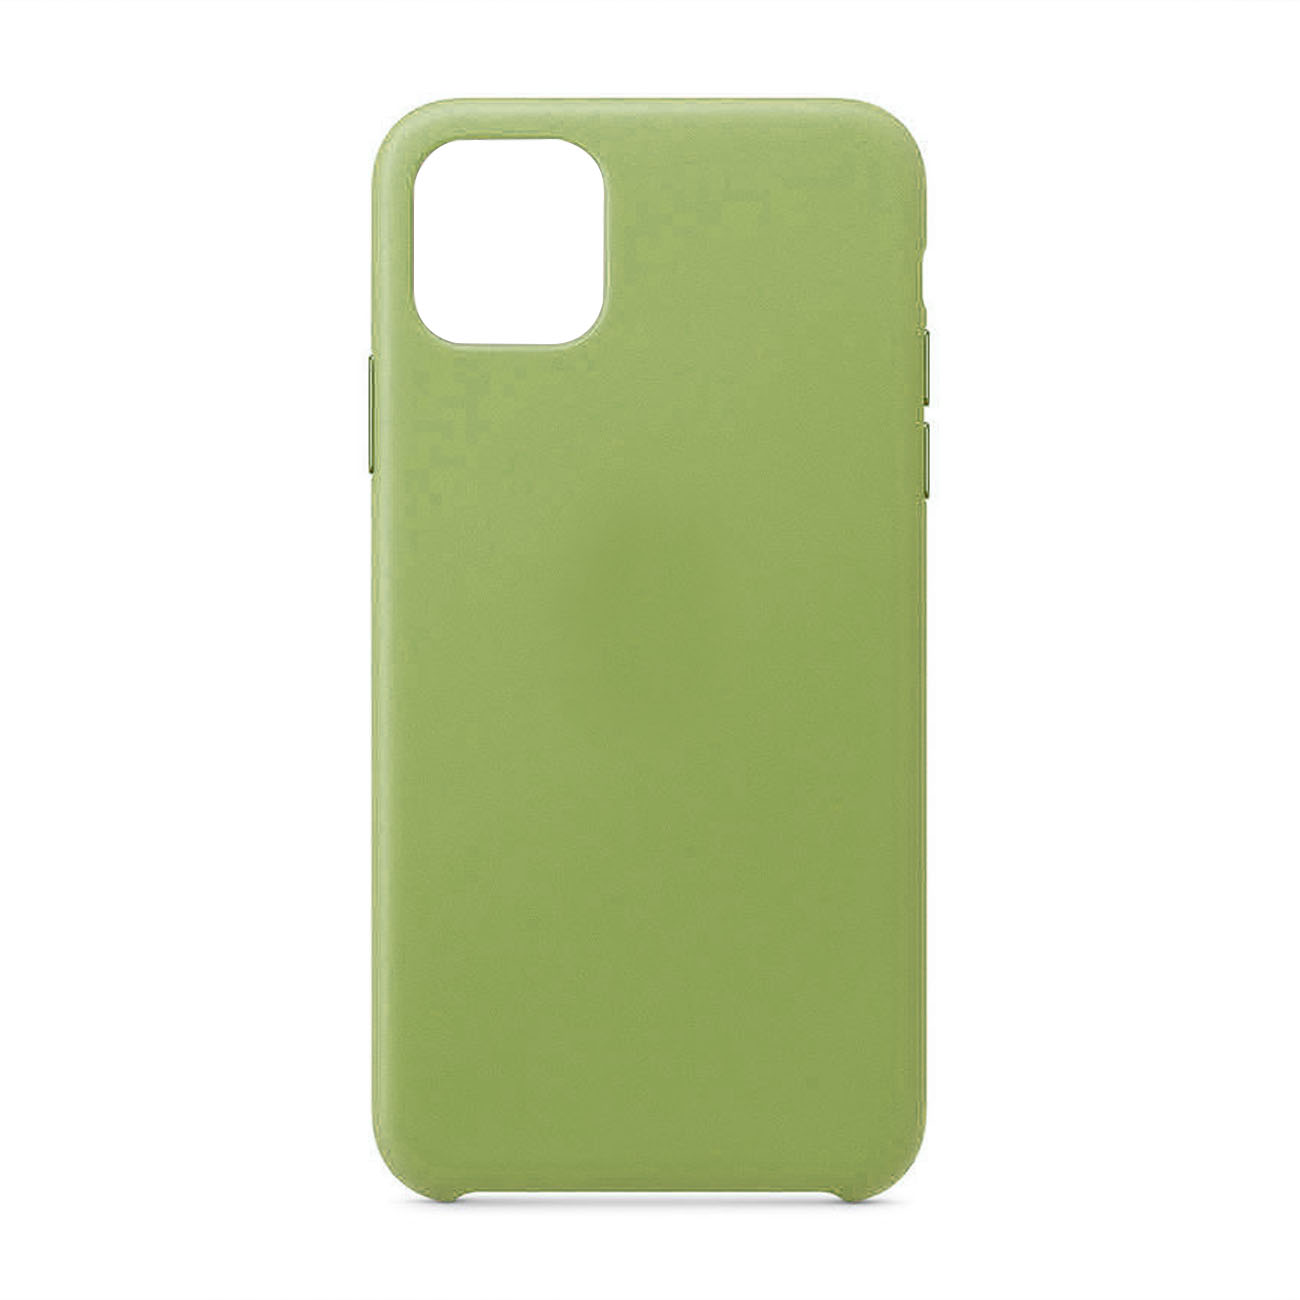 Apple iPhone 11 Pro Max Gummy Cases In Green